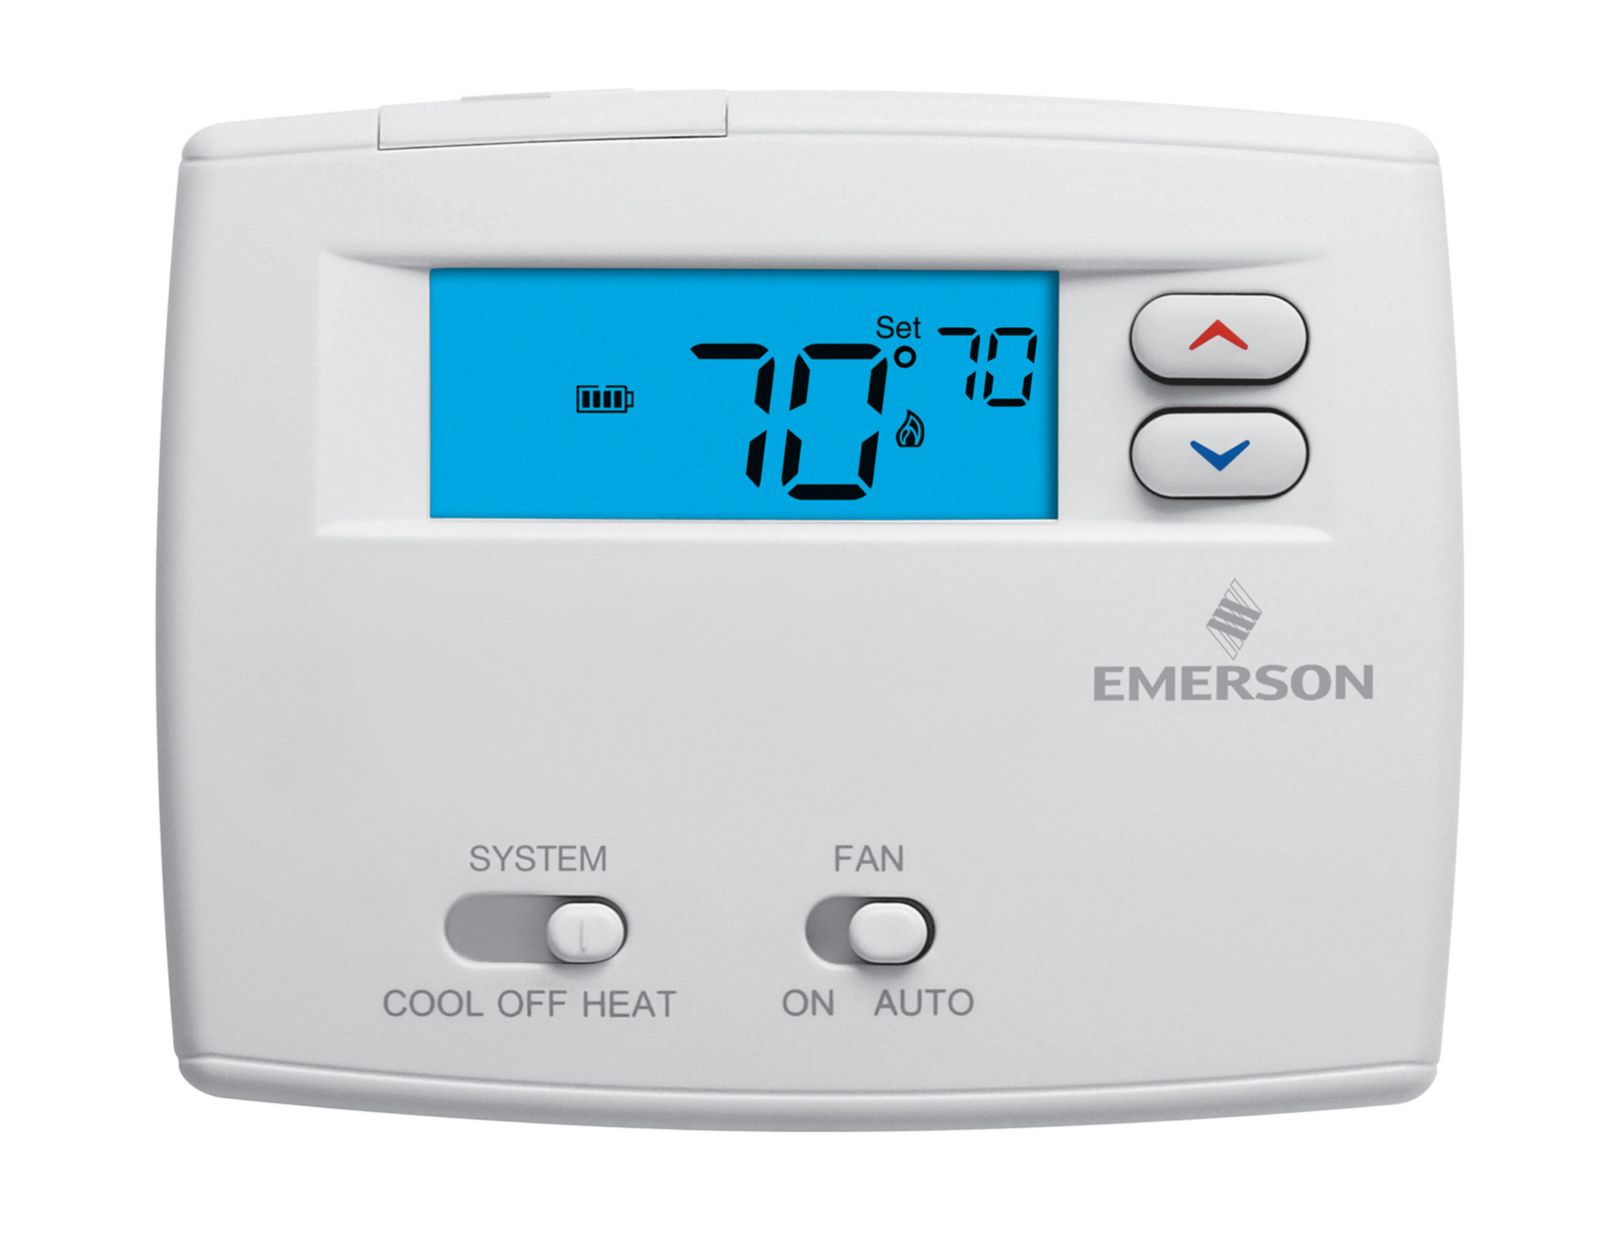 emerson digital thermostat wiring diagram Collection-Tools and Links 7-k